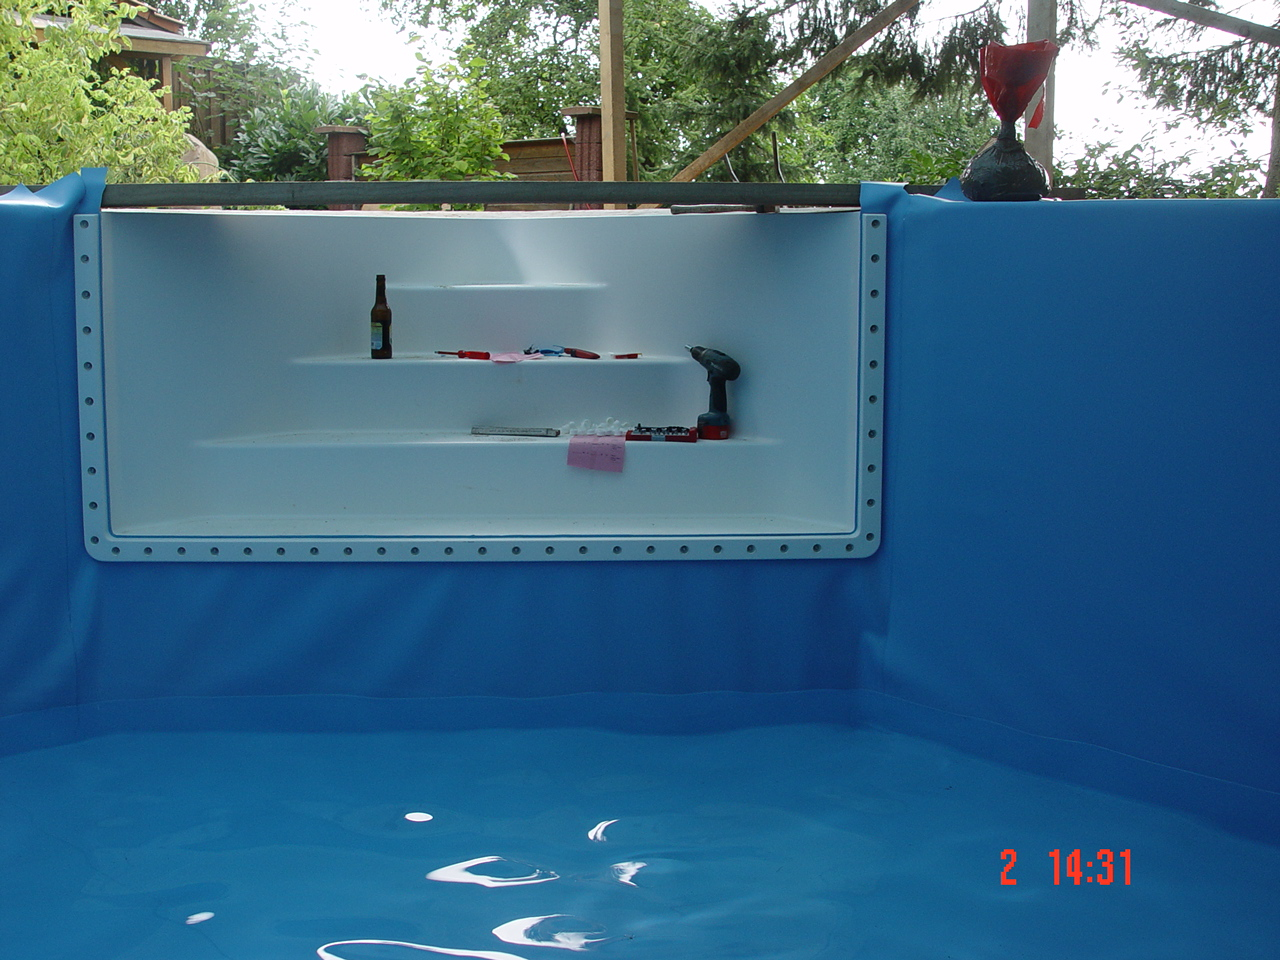 pool selber bauen archive pool selbstbau. Black Bedroom Furniture Sets. Home Design Ideas